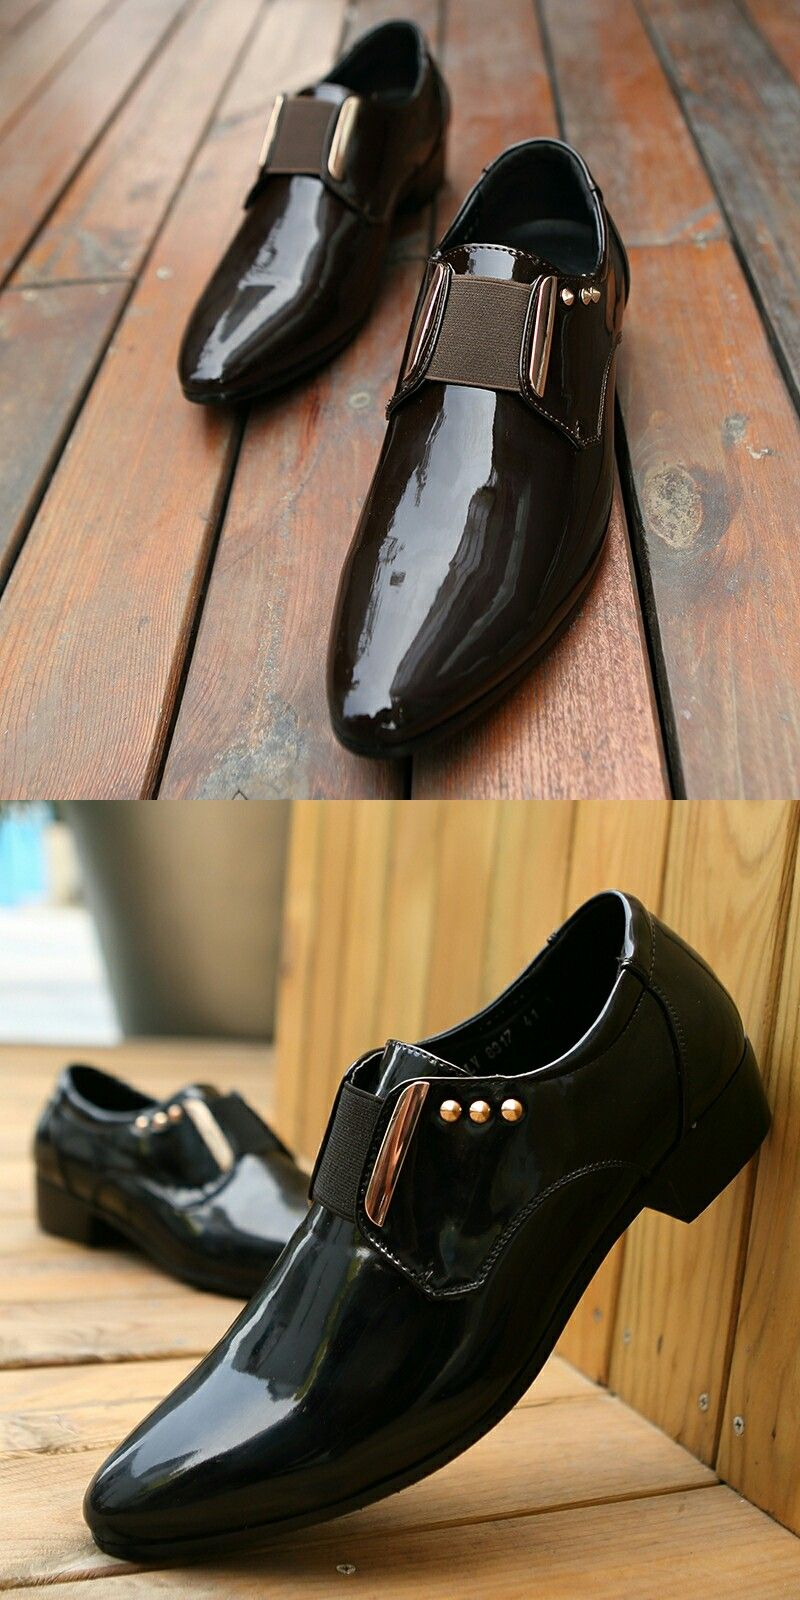 e56af49941285 Elegant Men Dress Shoes Patent Leather Black Business Wedding Shoes Flats  Pointed Toe Shining Metalic Big Size 45 46 US 10 10.5